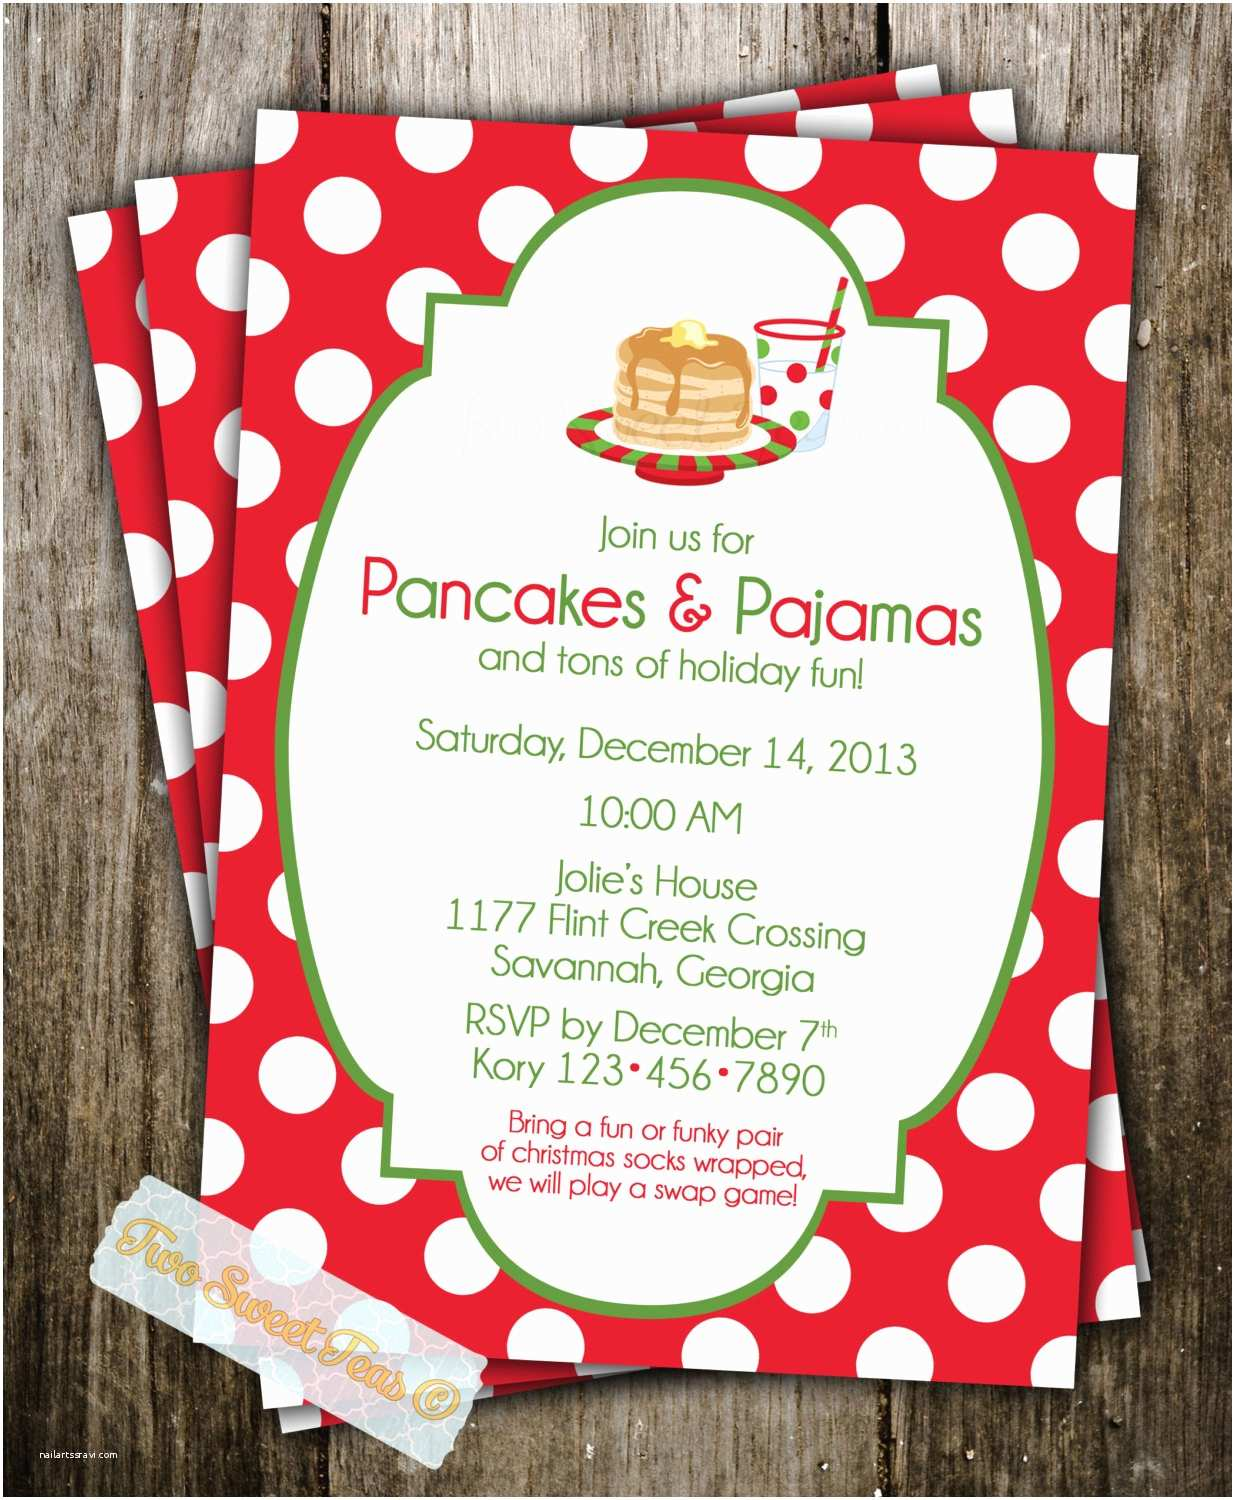 Diy Party Invitations Homemade Christmas Party Invitations Diy Christmas